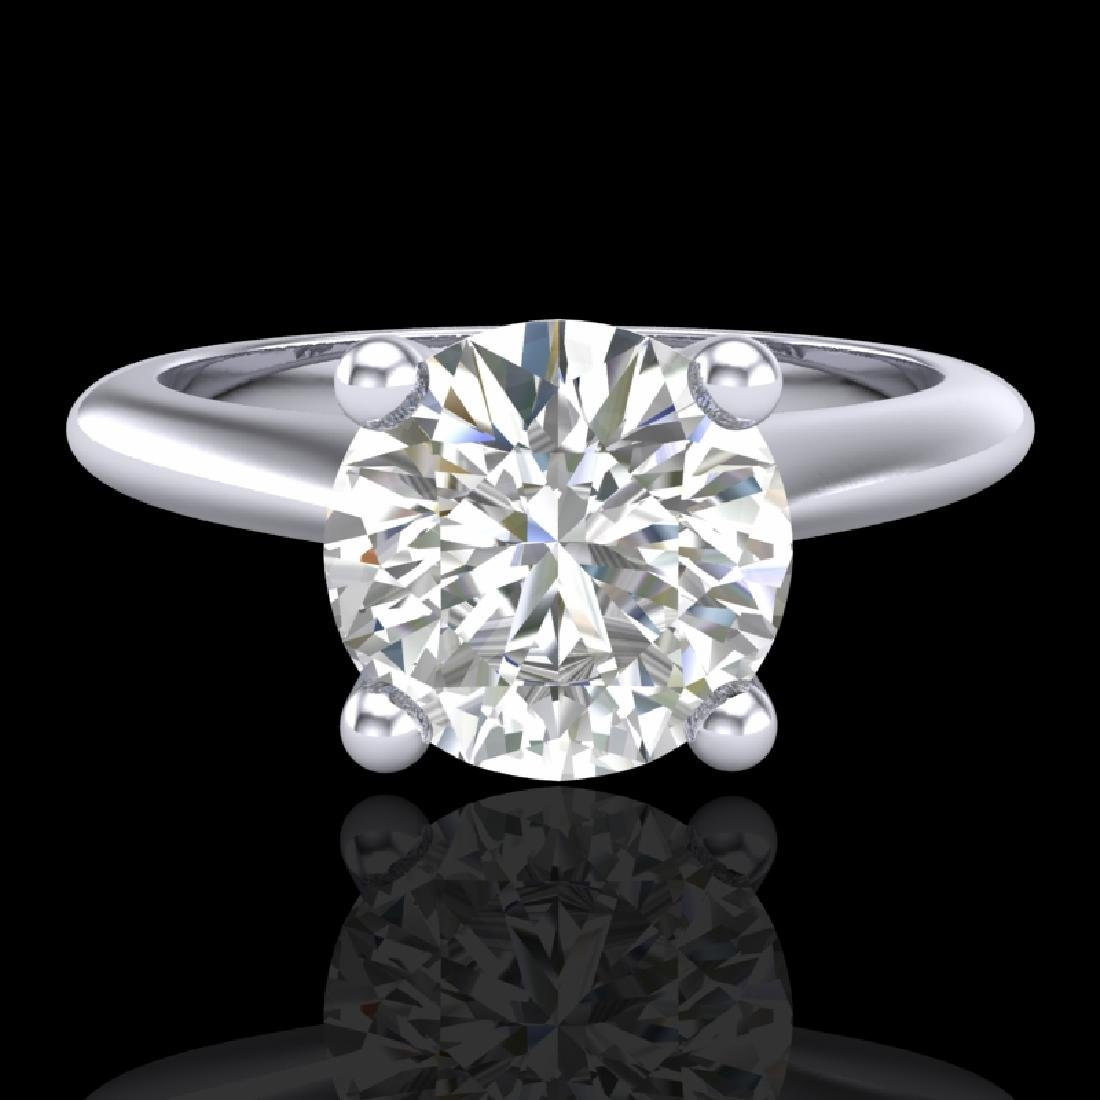 1.6 CTW VS/SI Diamond Art Deco Ring 18K White Gold - 2